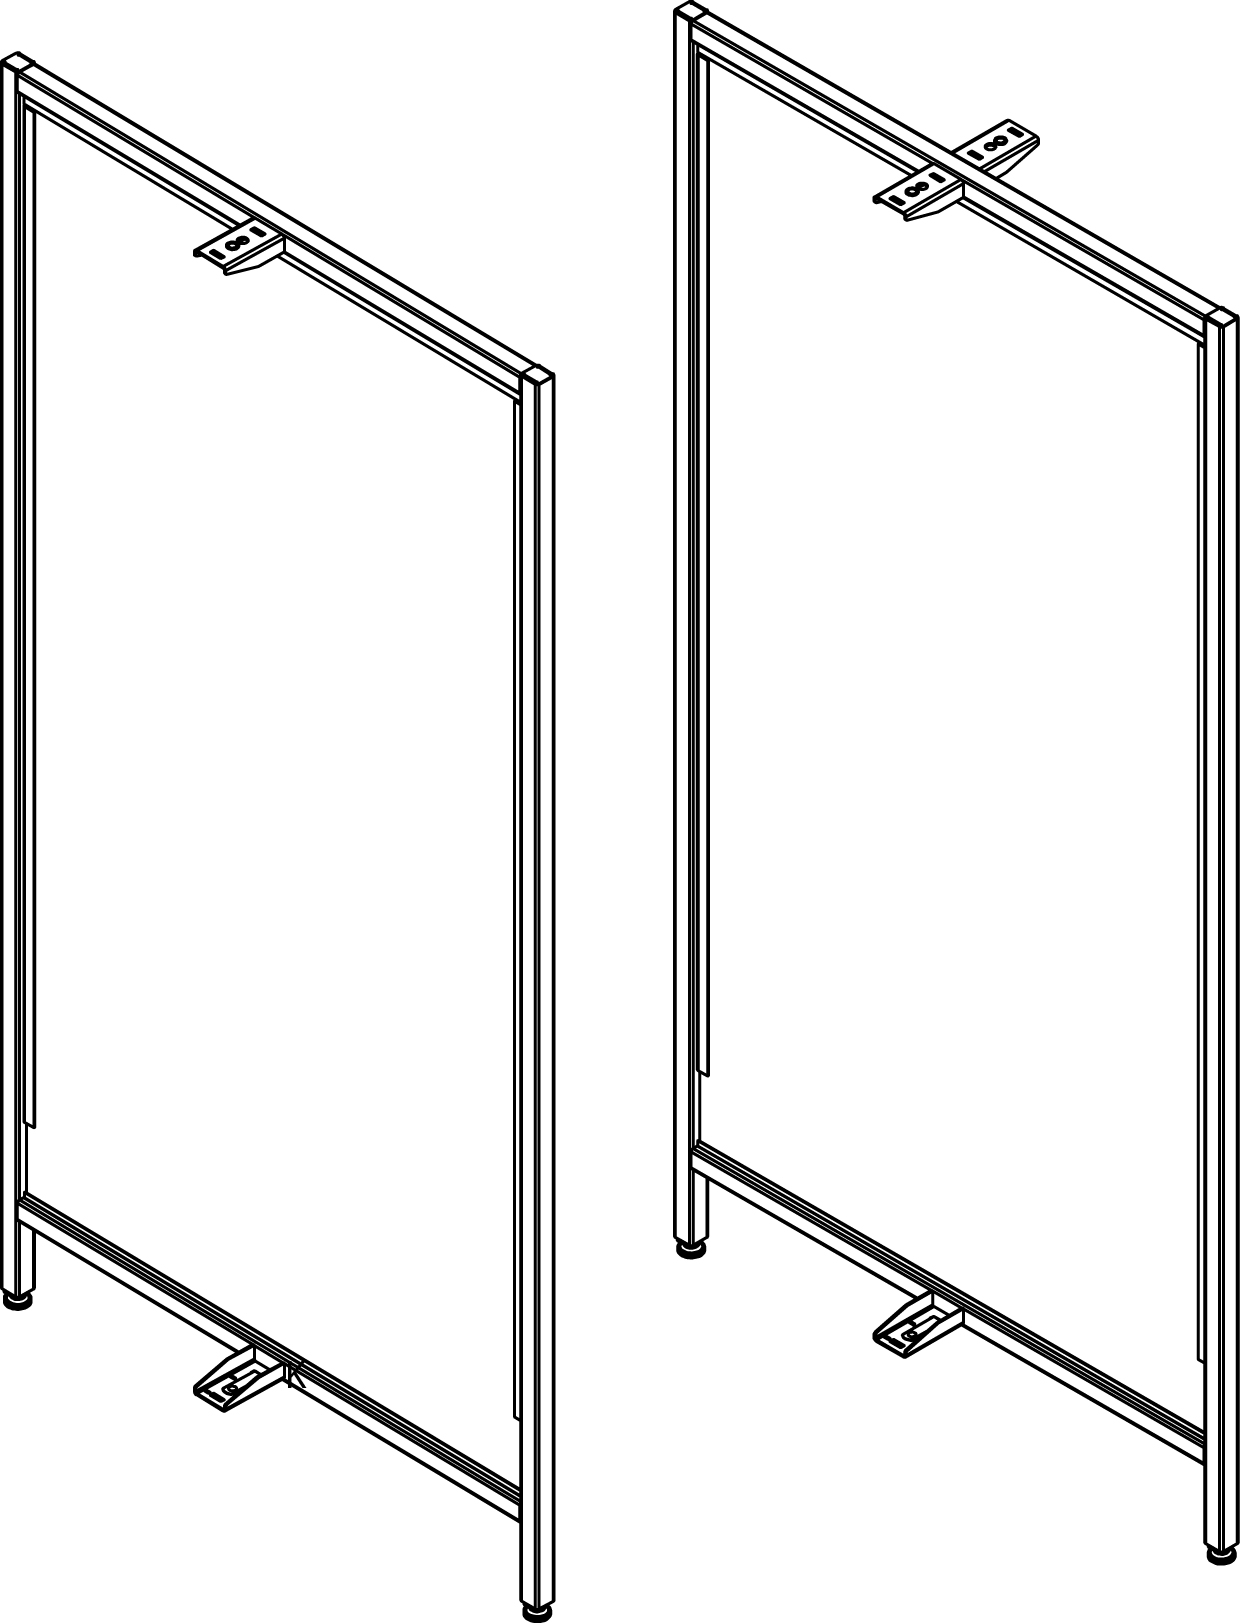 UFDPU(OPT1)(NW)(NH)(OPT2)-Vesta Fixture Upright Divider Panel, End and Intermediate